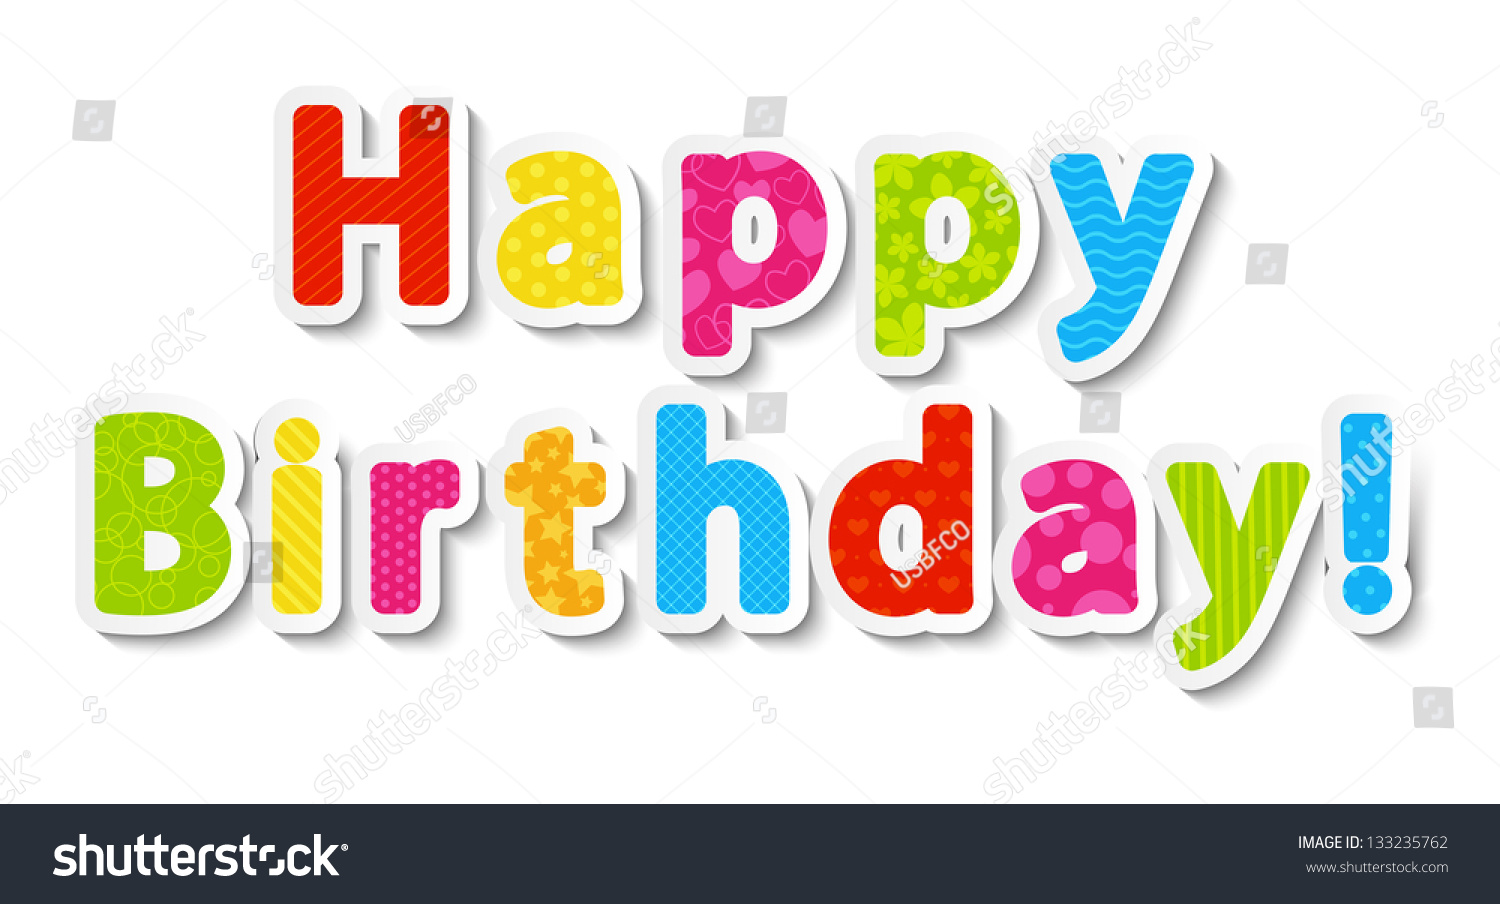 happy birthday letters images happy birthday color paper letters stock vector 17589 | stock vector happy birthday color paper letters 133235762